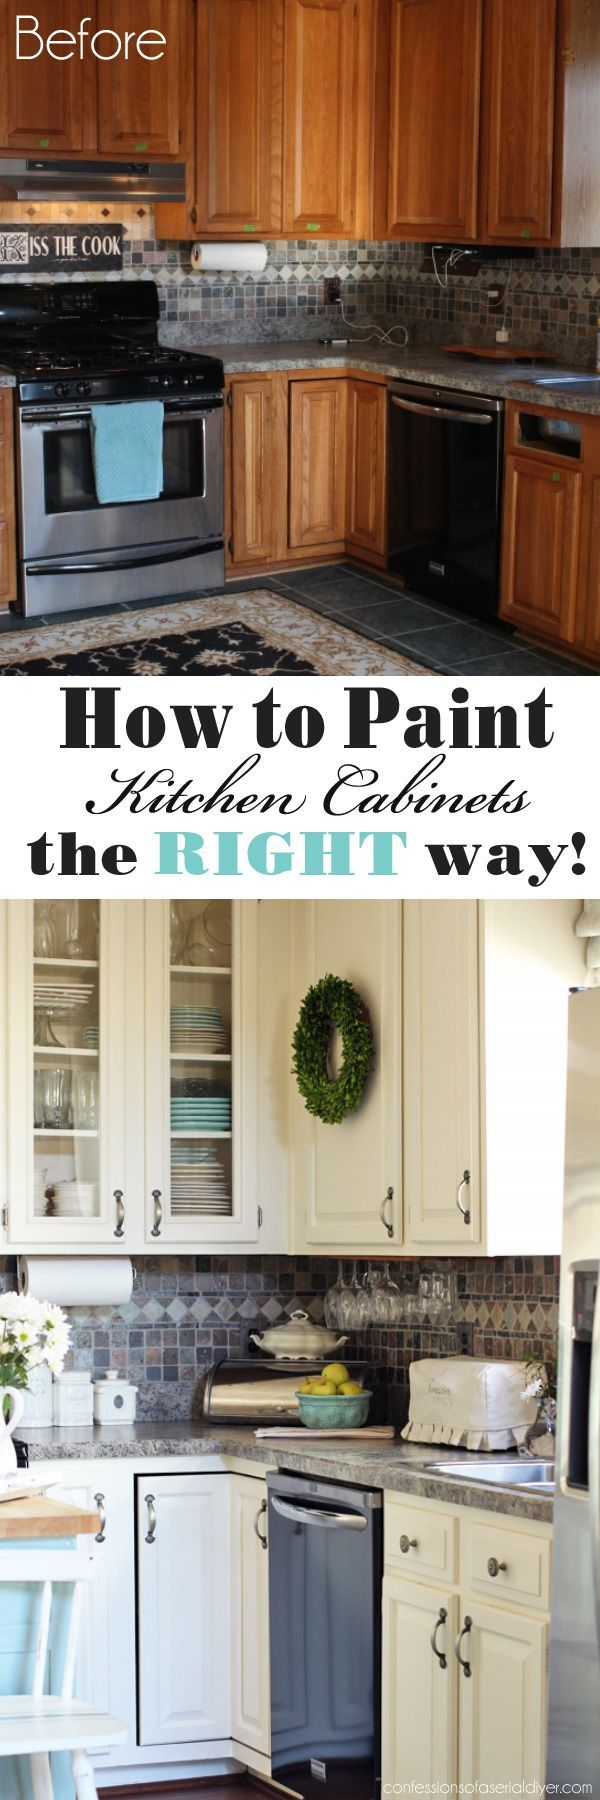 How To Paint Kitchen Cabinets A Step By Step Guide Confessions Of A Serial Do It Yourselfer Diy Kitchen Painting Kitchen Cabinets Home Kitchens